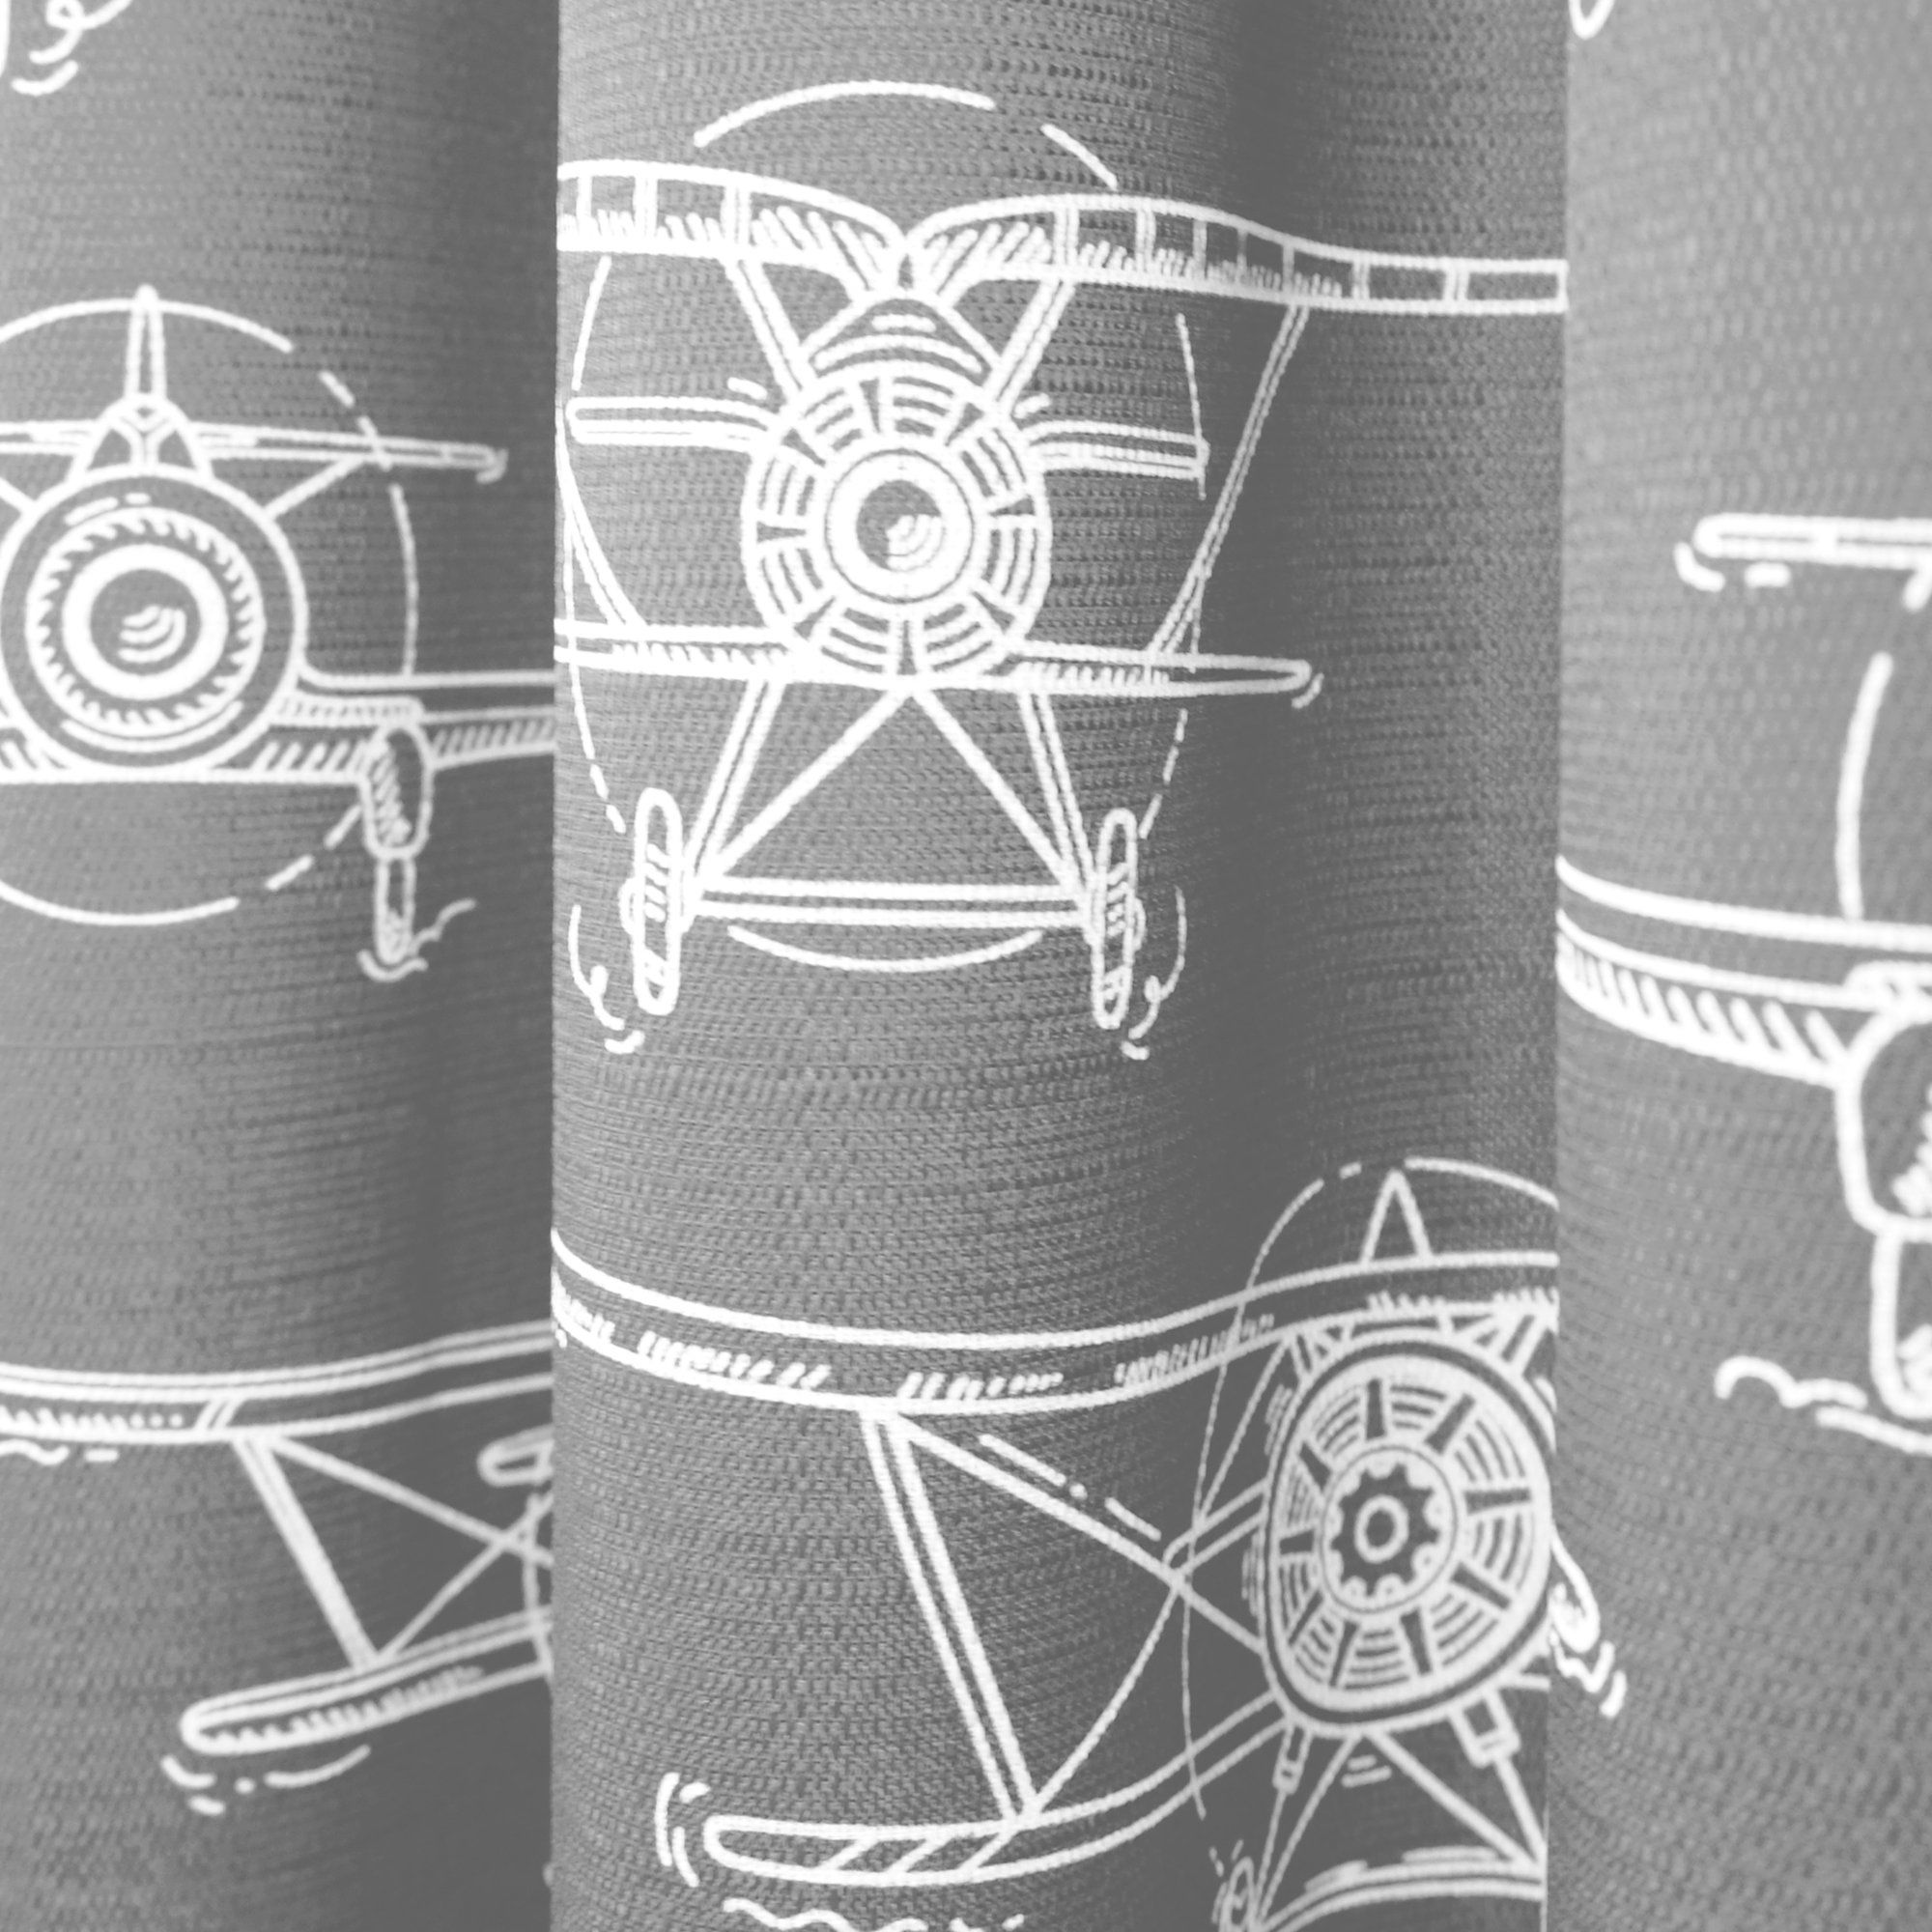 e5f64e1cf4b2ee2c7a131e53277f565c - Better Homes And Gardens Airplanes Curtain Panel